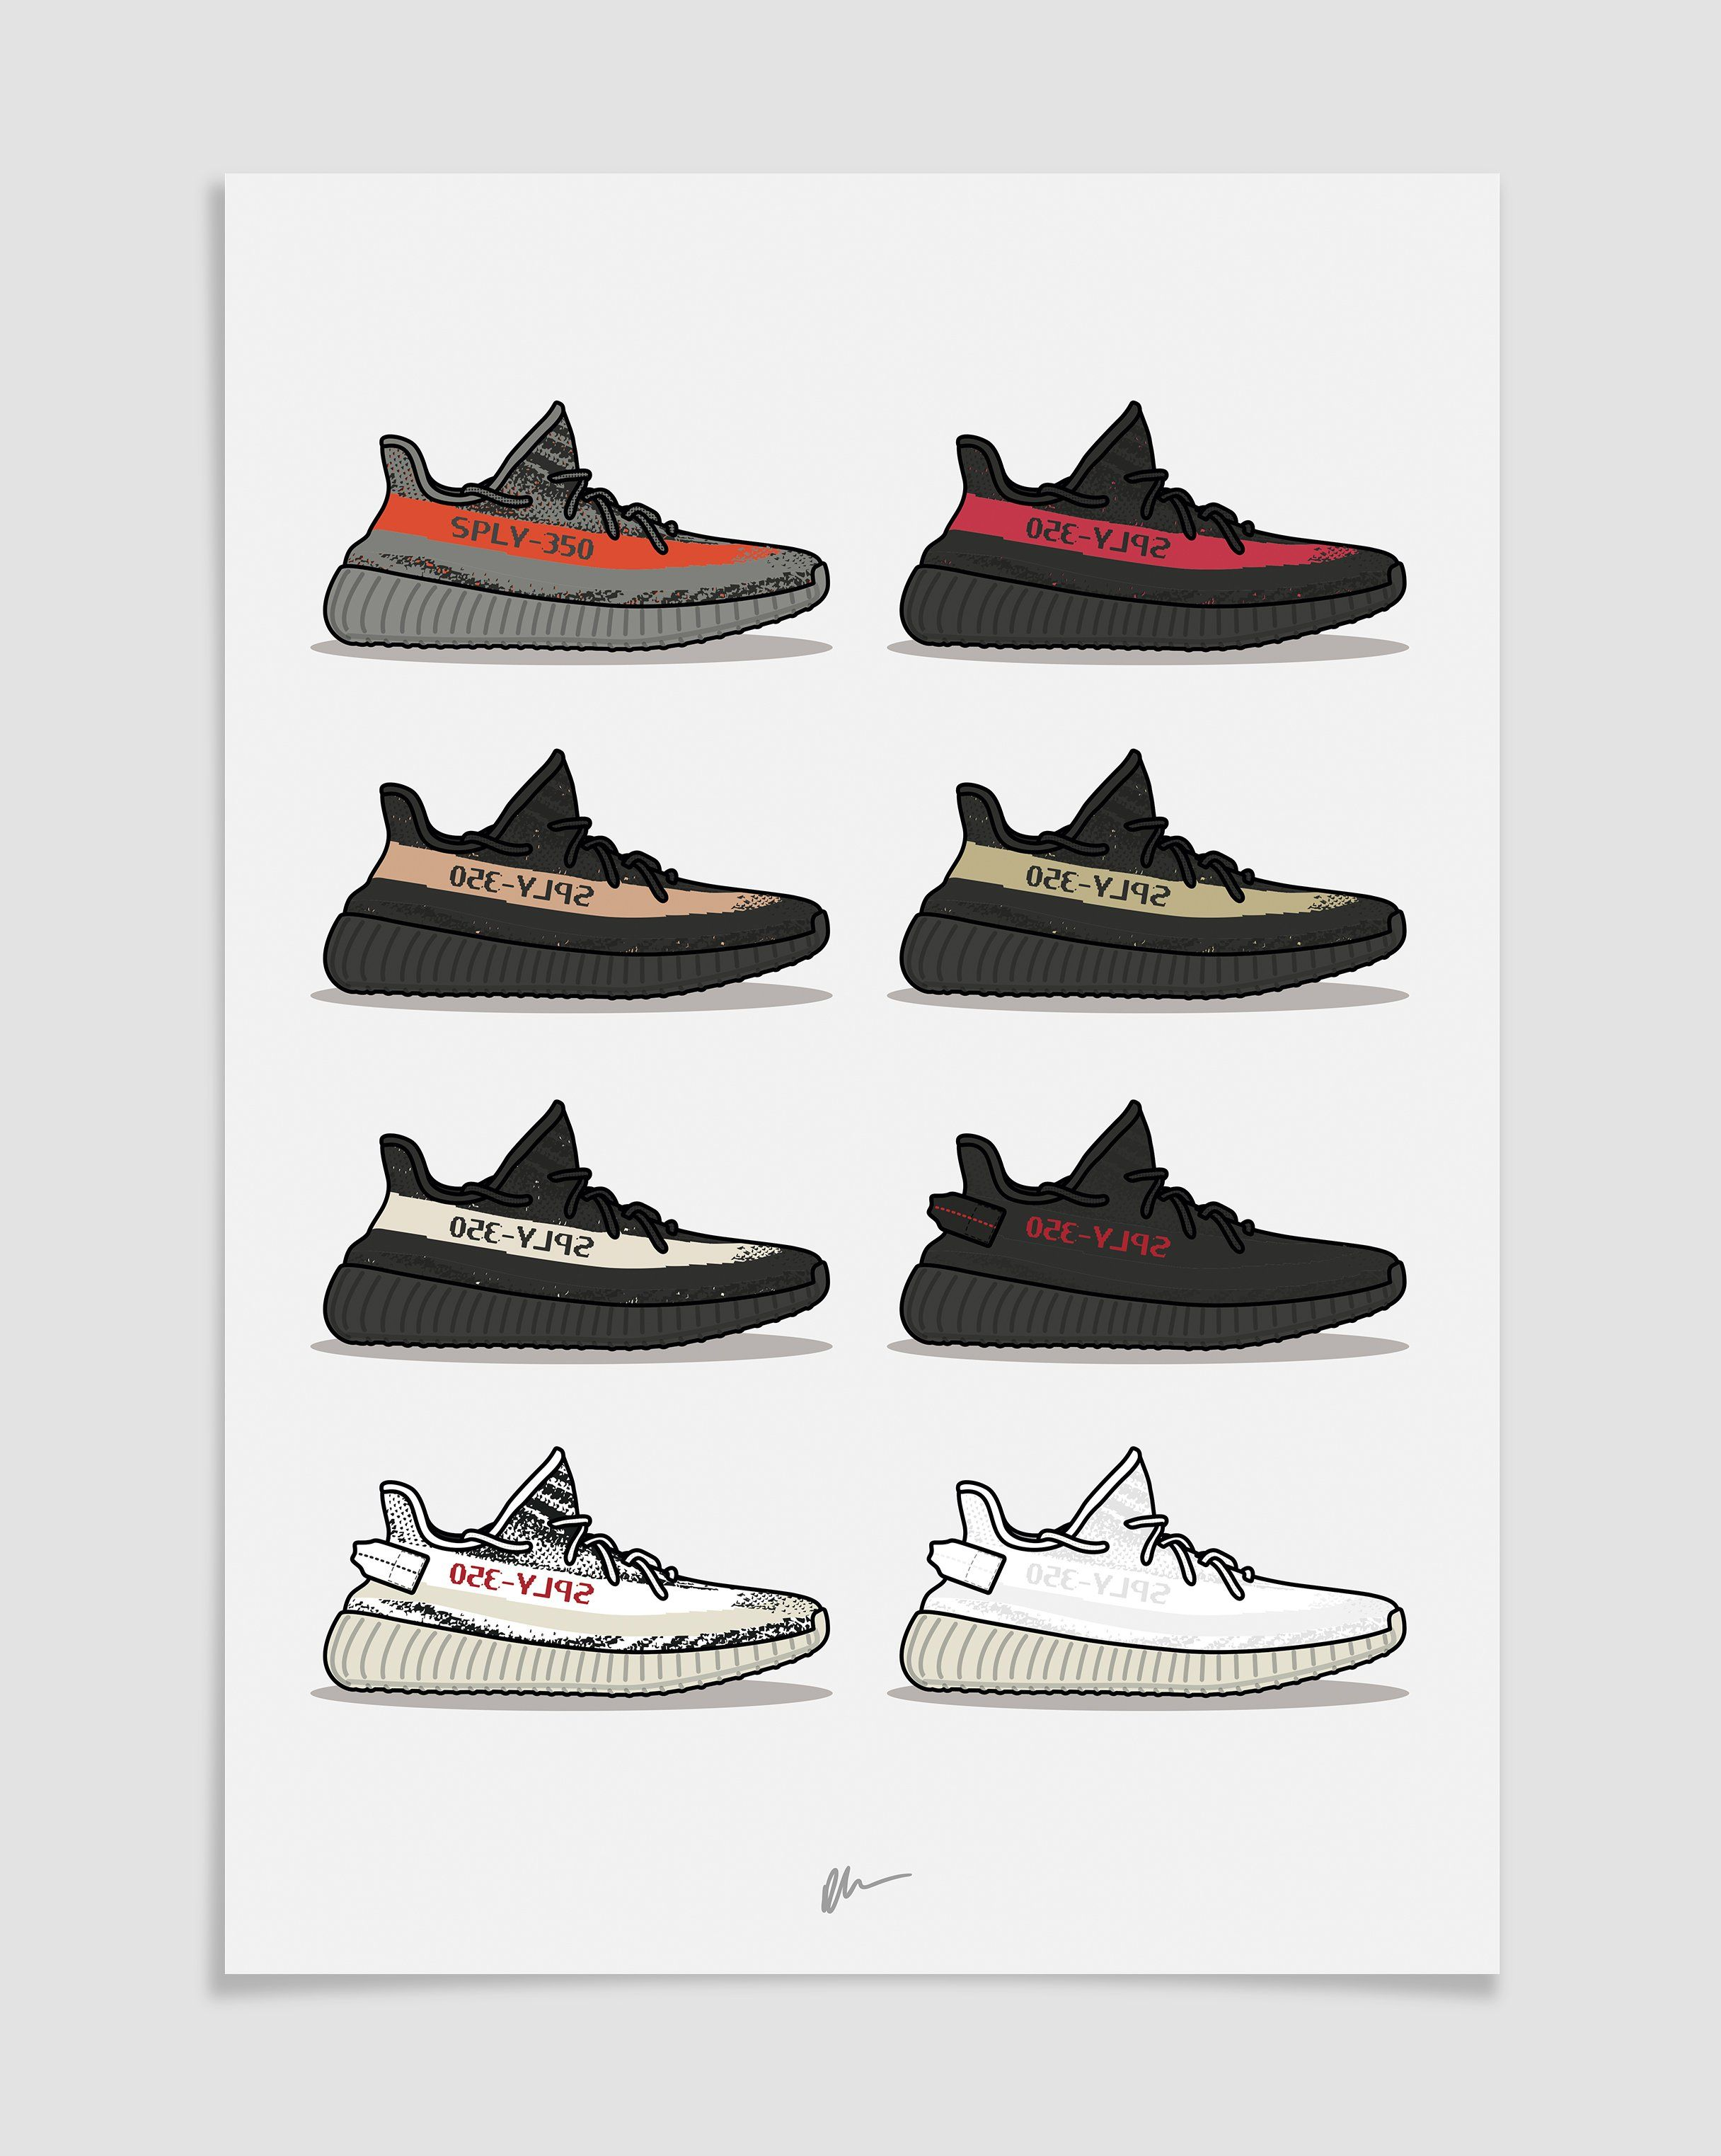 Originally Created Yeezy 350 V1 Vs 350 V2 Illustration The Ideal For The Home Or Office Ideal For Sneake Hypebeast Wallpaper Hype Wallpaper Sneakers Wallpaper